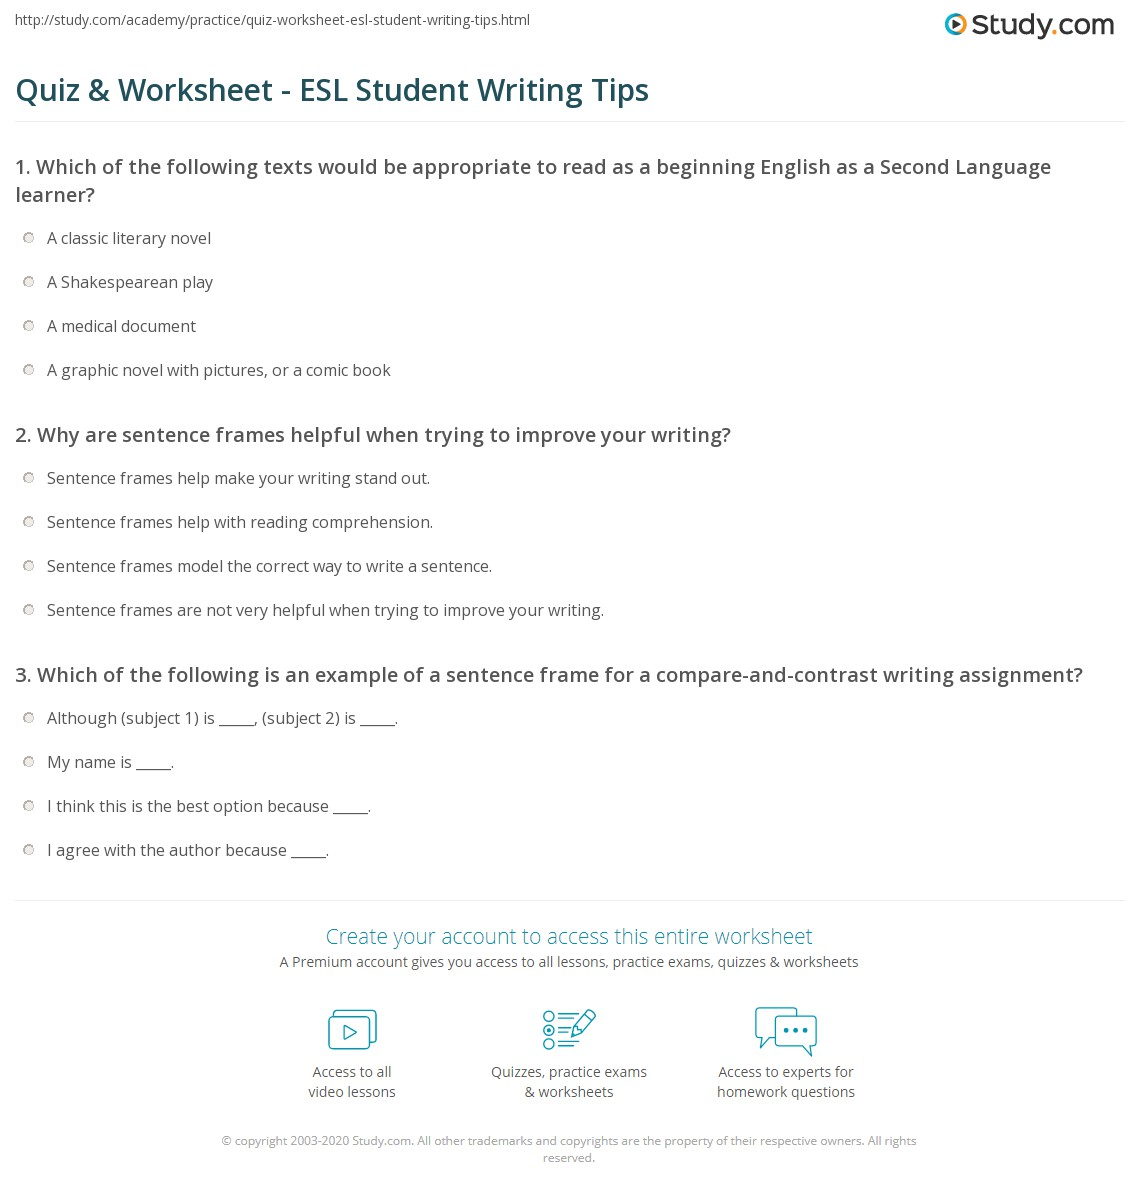 worksheet Esl Writing Worksheets quiz worksheet esl student writing tips study com print strategies for students worksheet